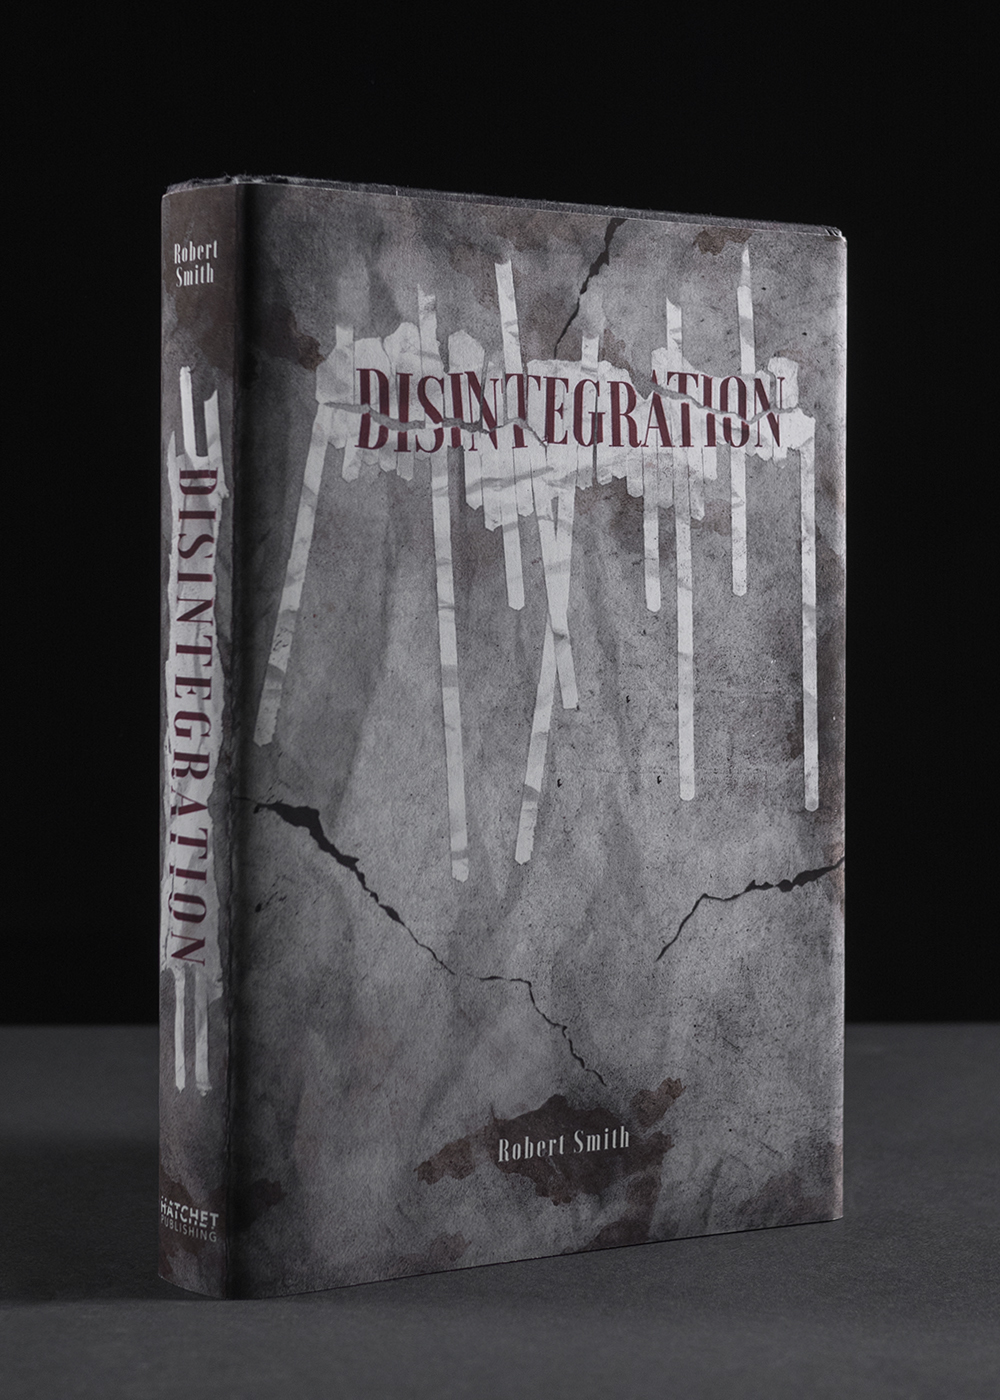 How To Create A Book Cover Design ~ Disintegration book cover design on behance